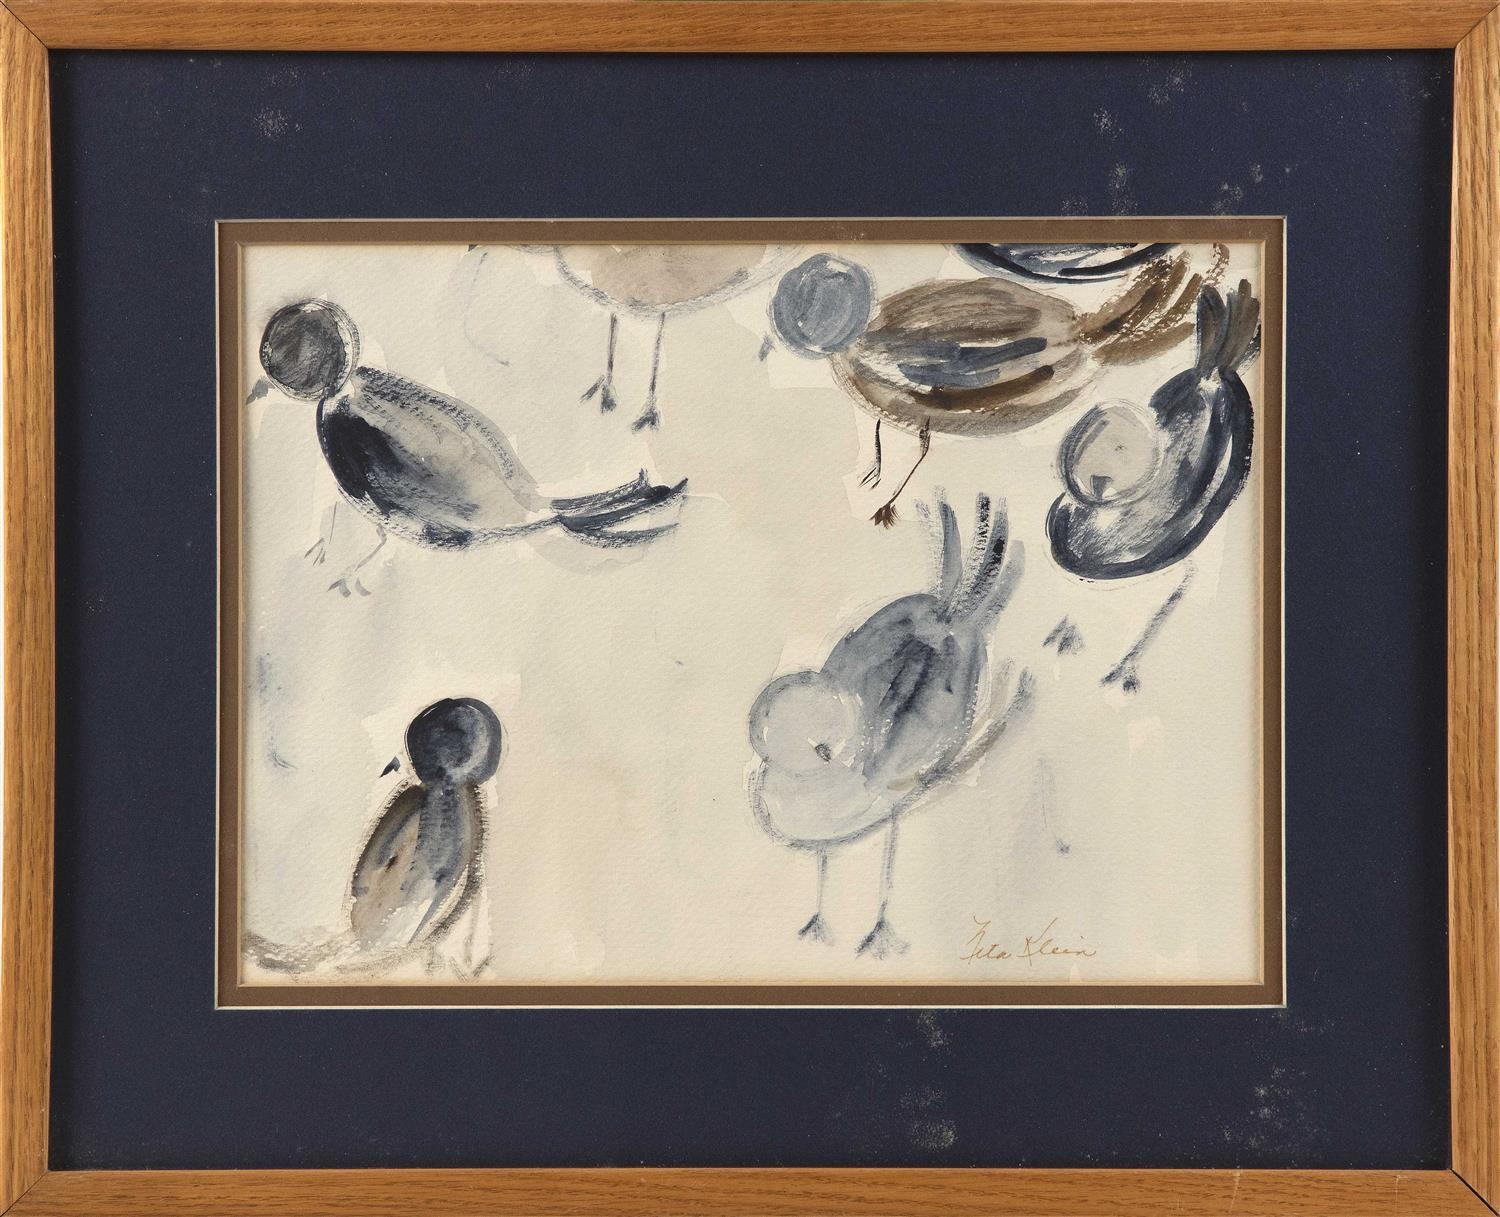 "NITA KLEIN, America, Contemporary, Shorebirds., Watercolor, 10.5"" x 14.25"" sight. Framed 17"" x 21""."